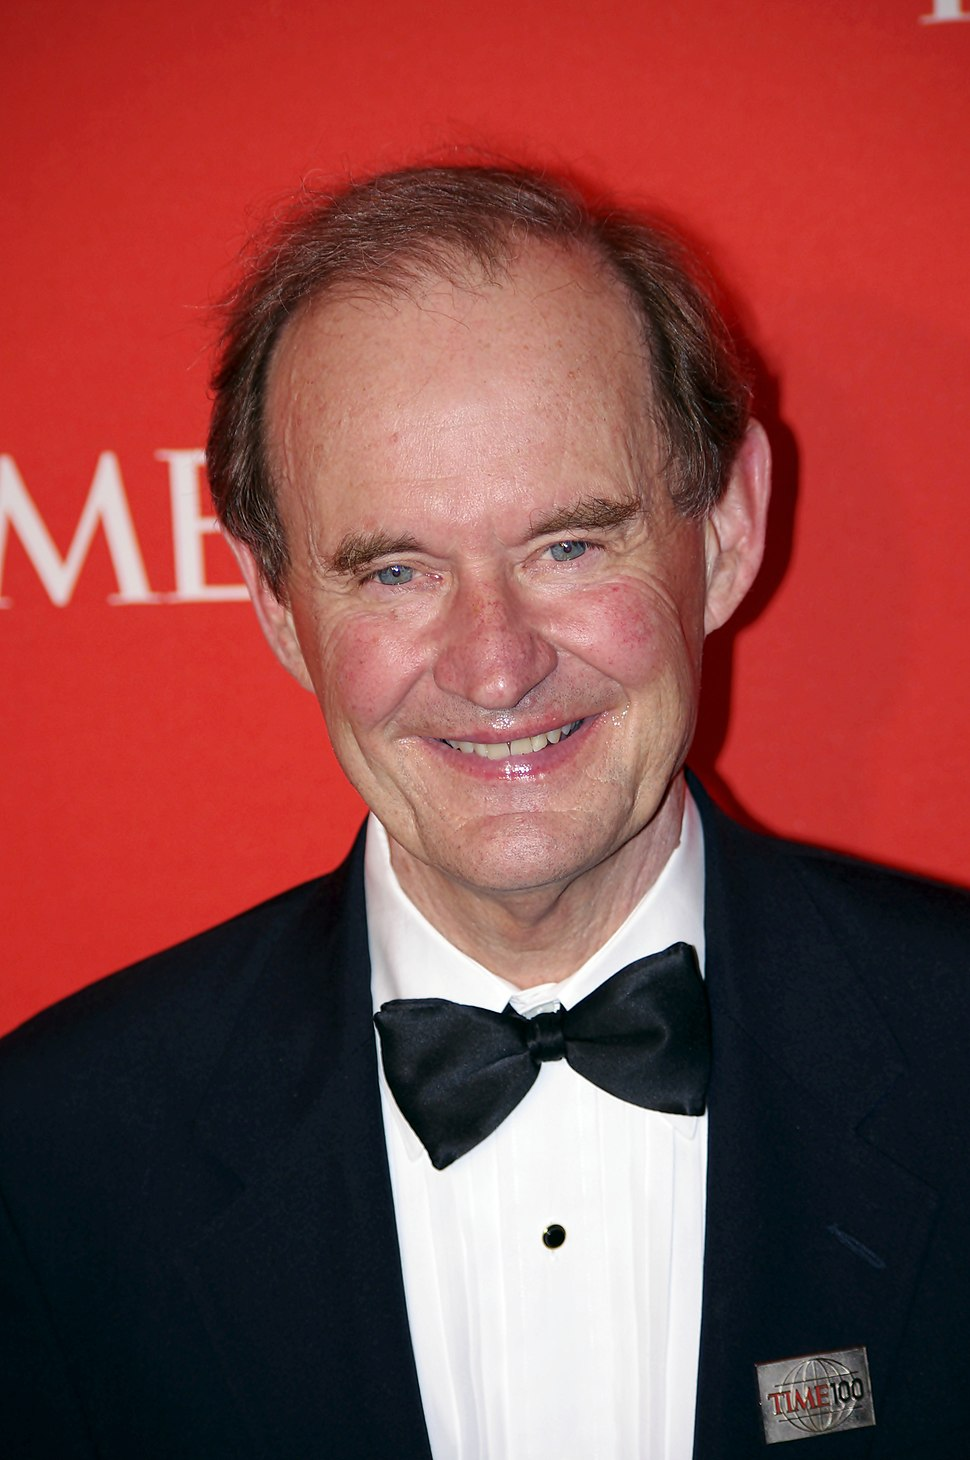 David Boies 2011 Shankbone